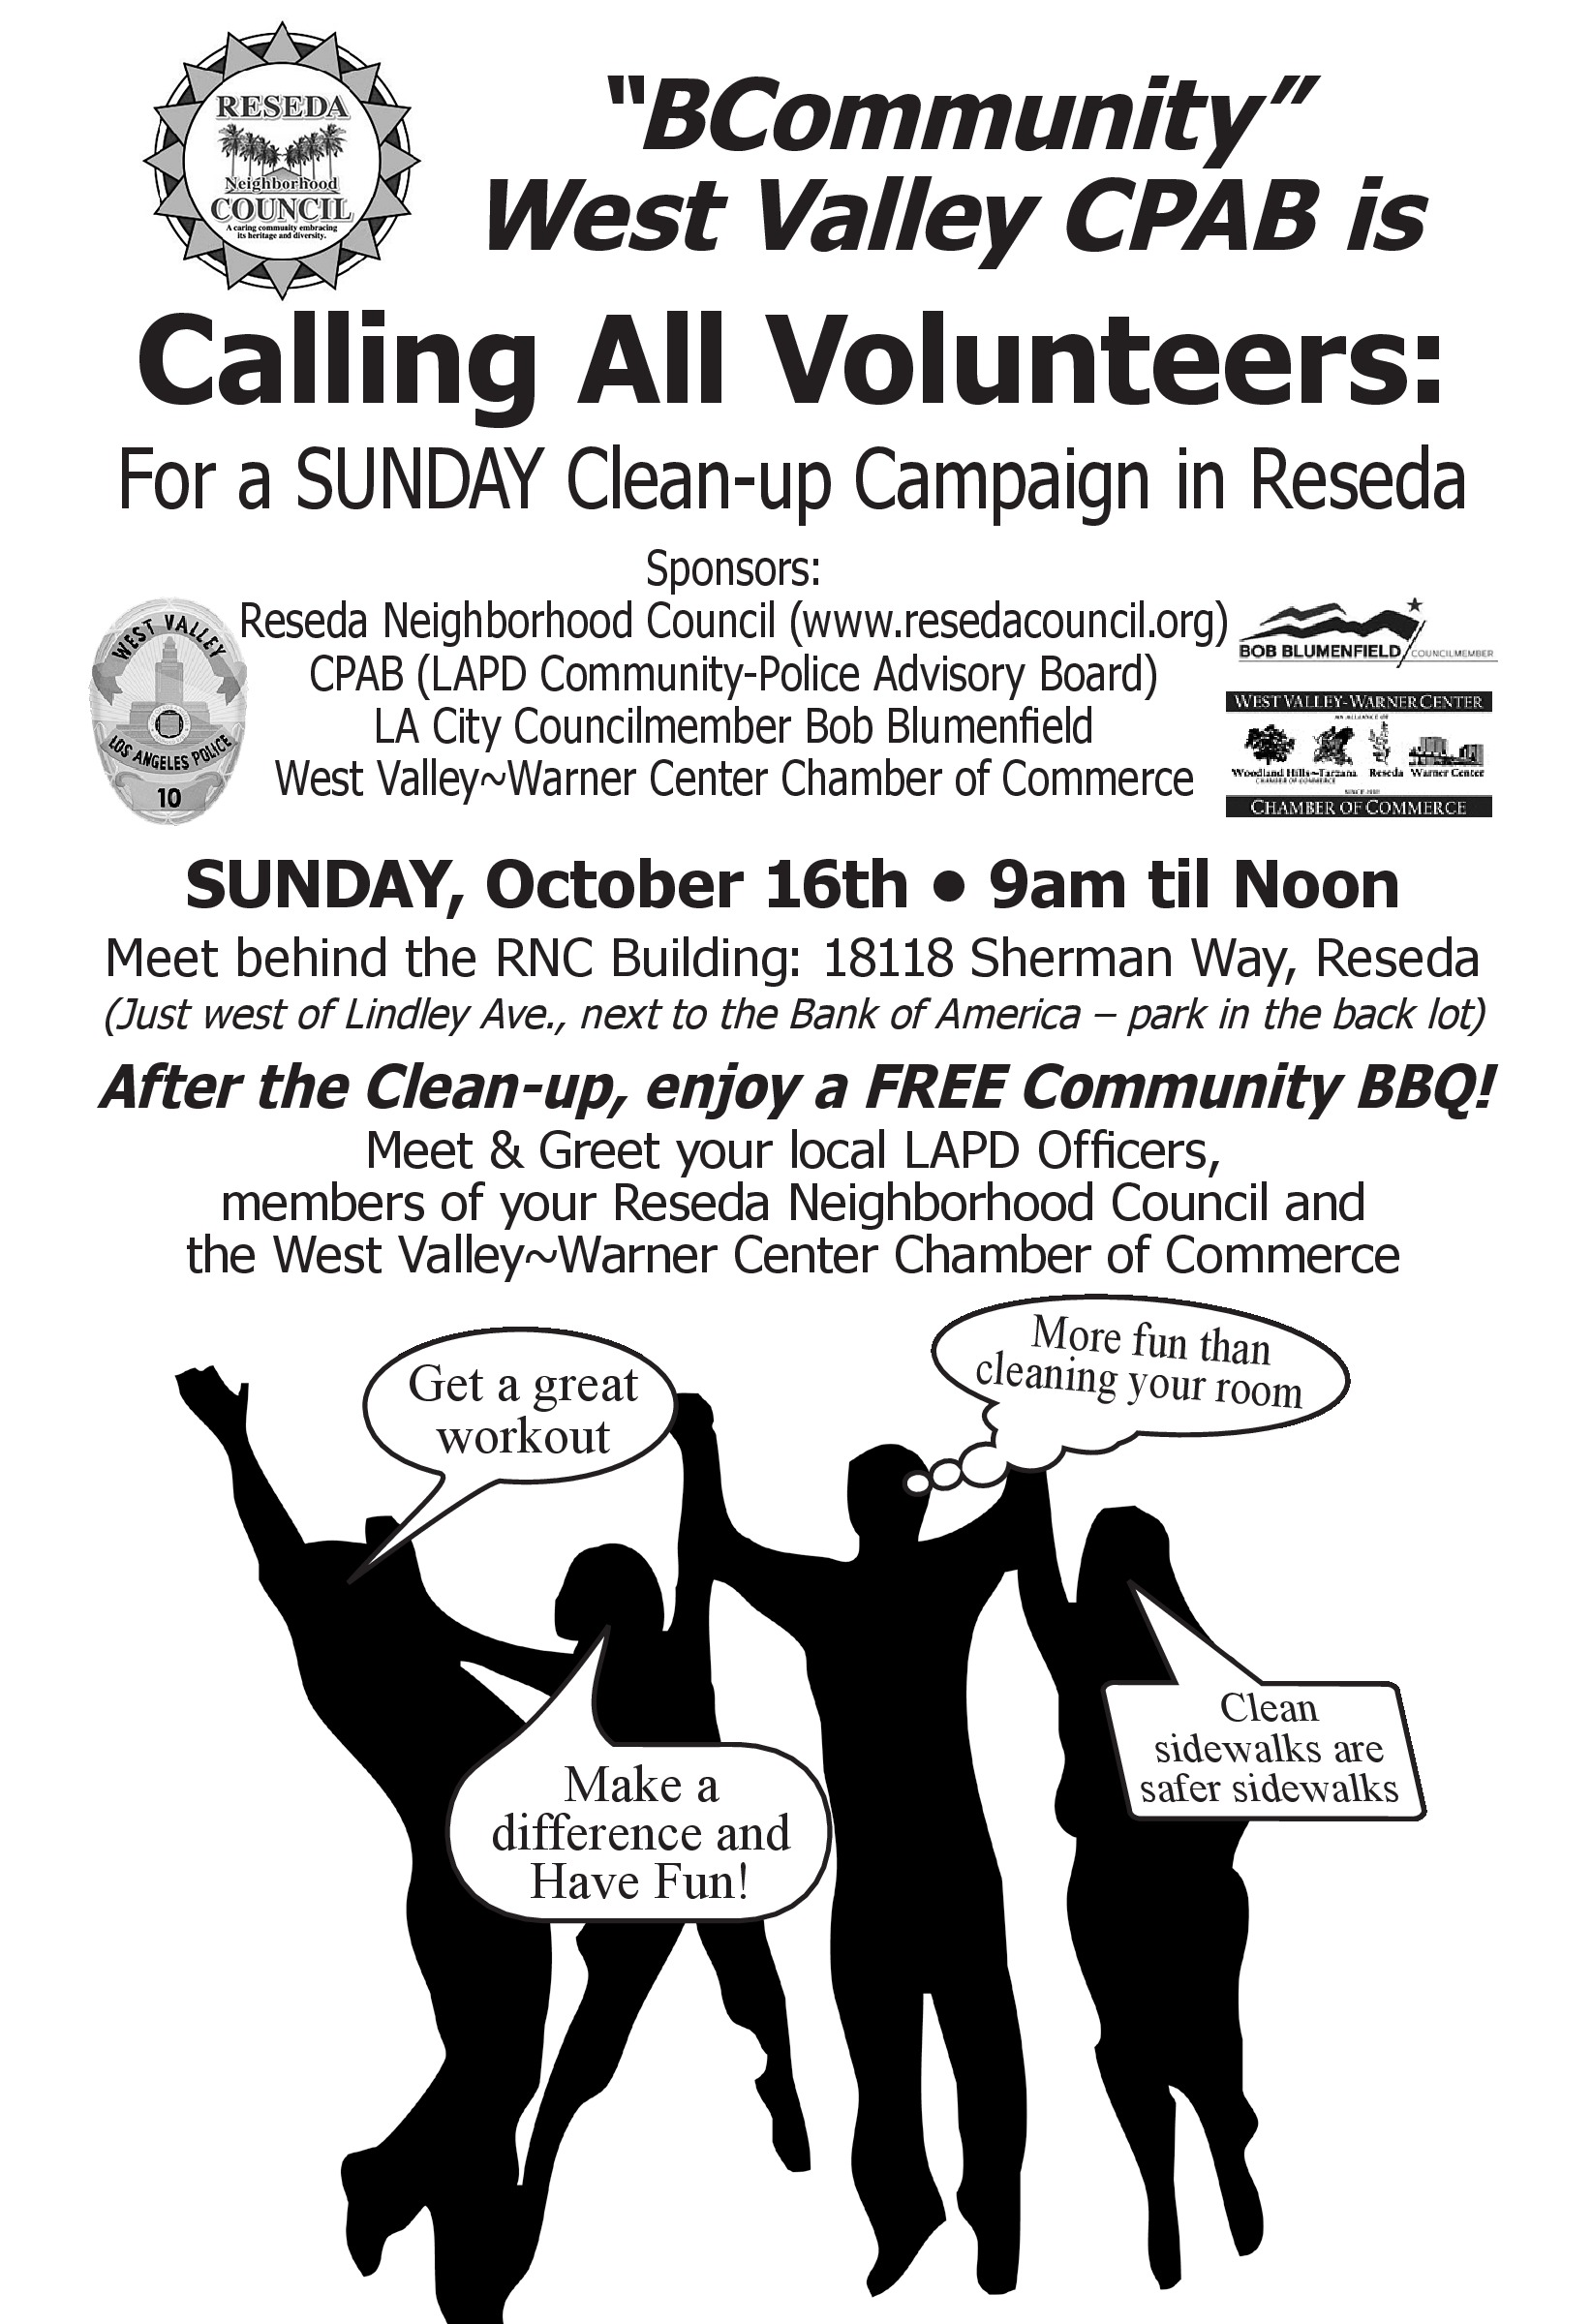 BCOMMUNITY_sidewalk_cleanup_FLYER_full_pg___enlarge_1-up_mast-page-0.jpg